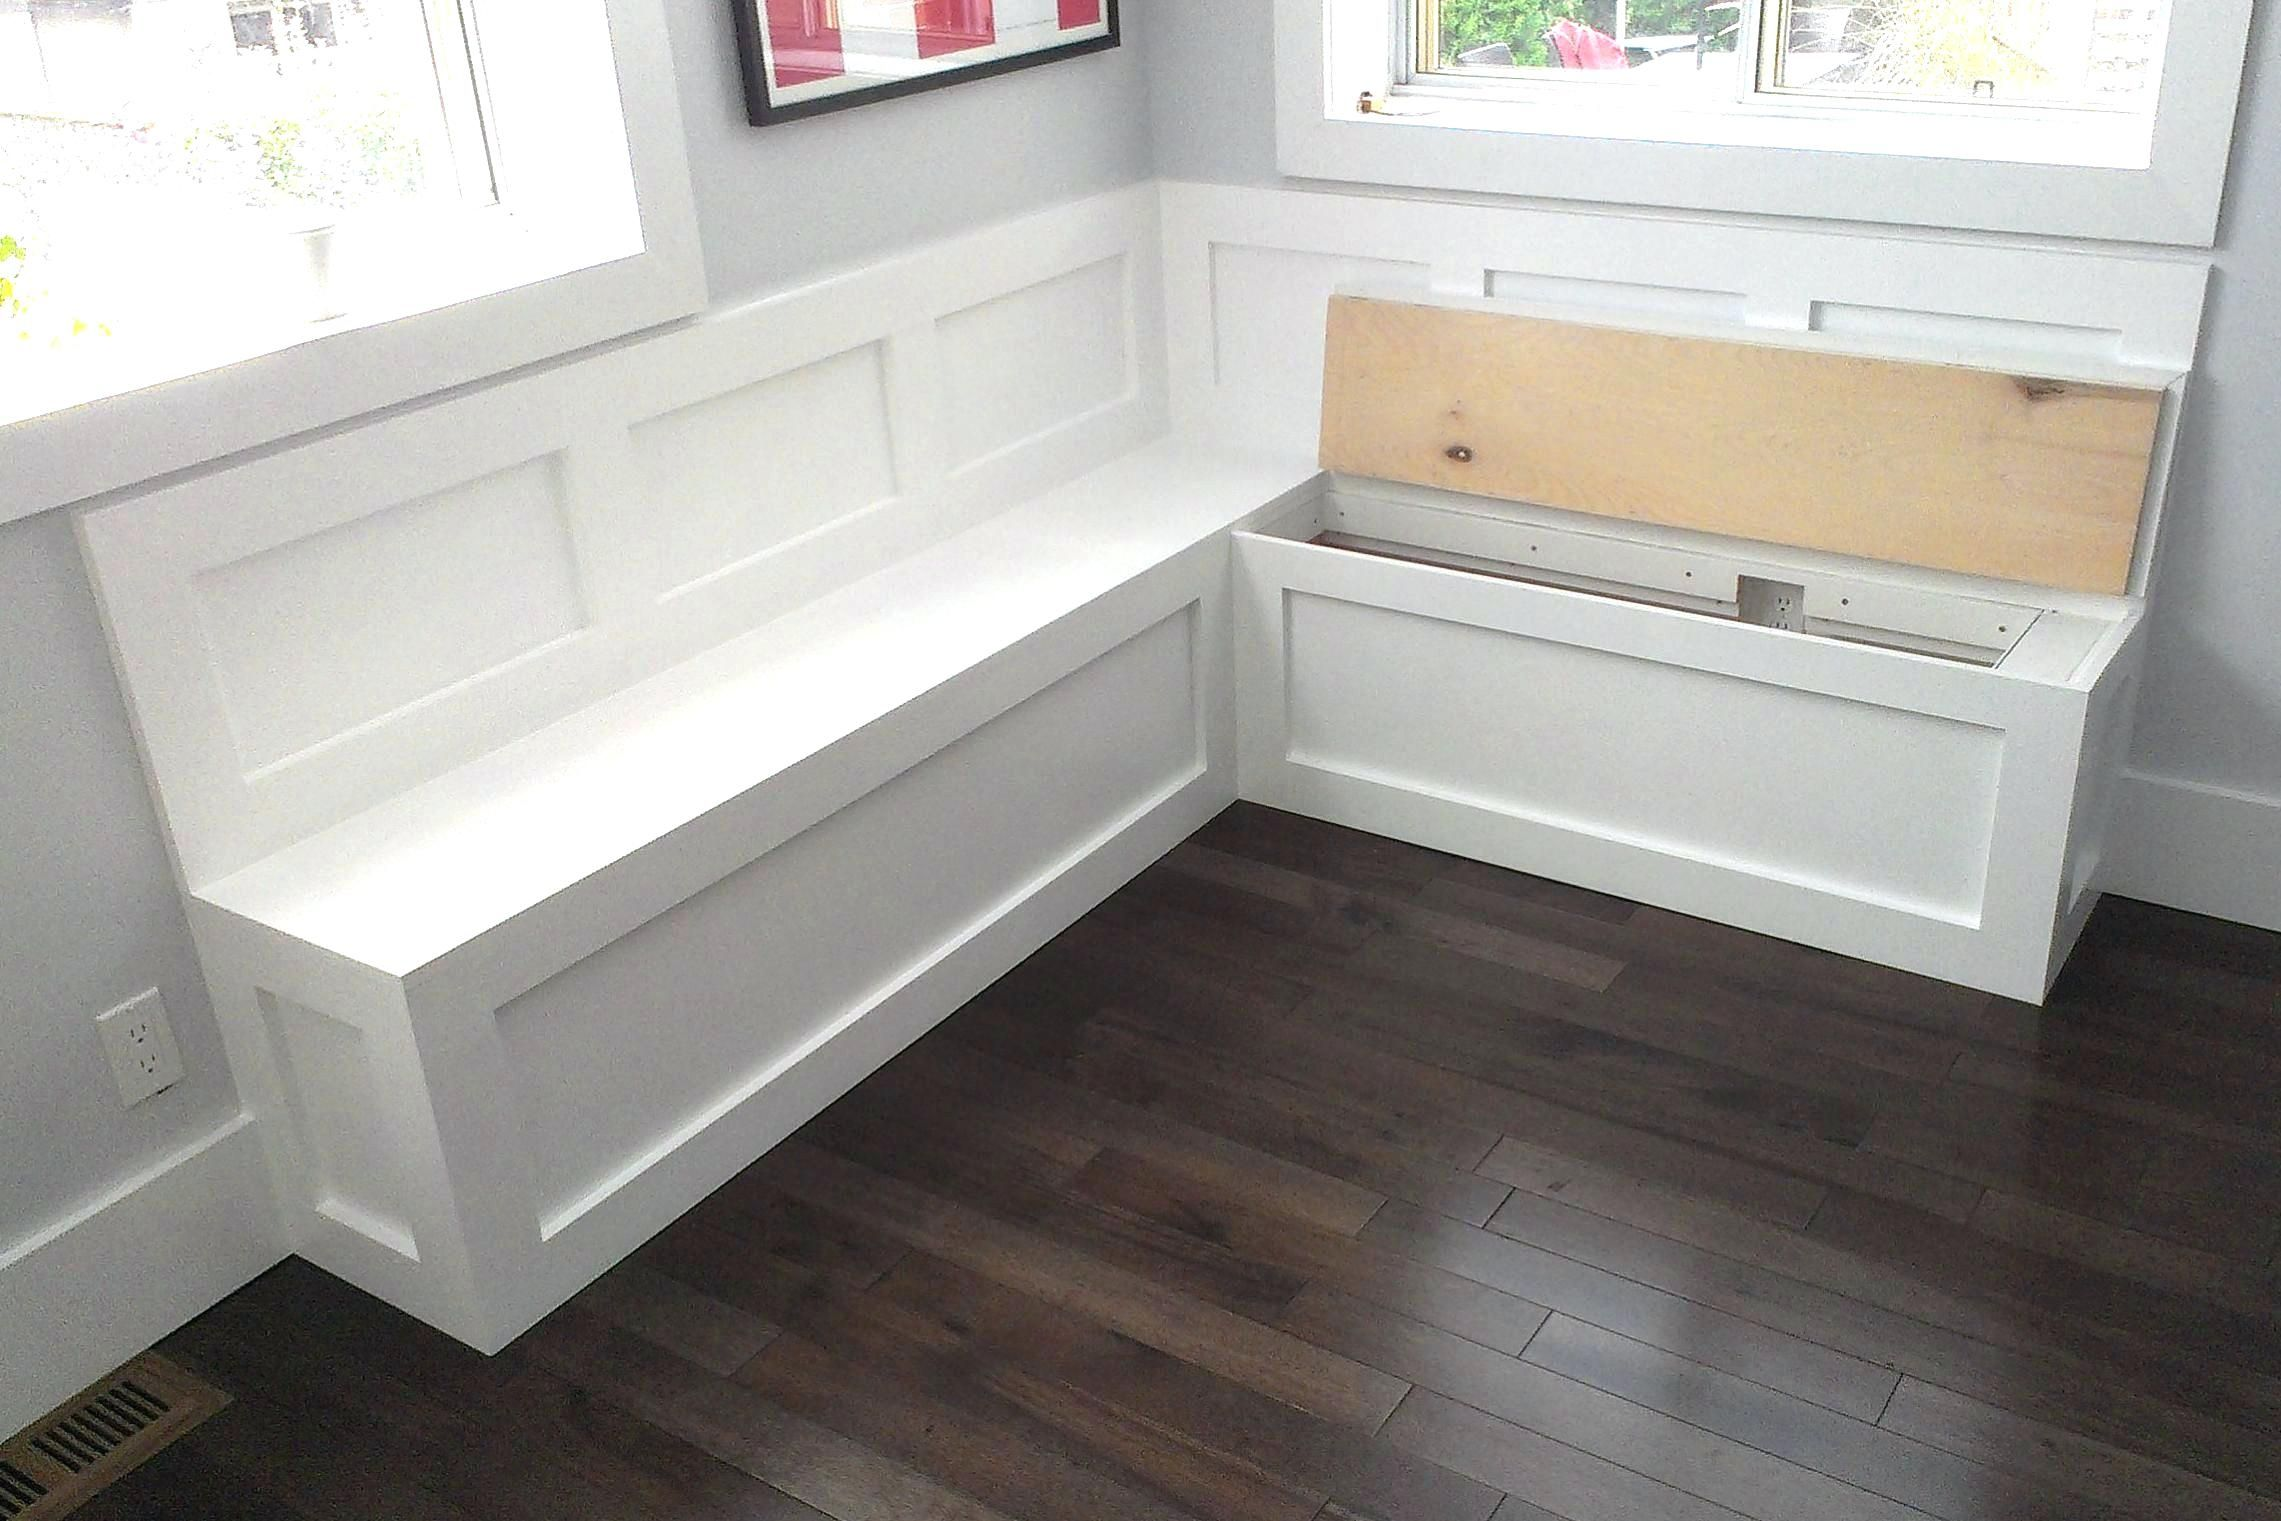 Kitchen Bench Seating With Storage Plans Bench Seating Kitchen